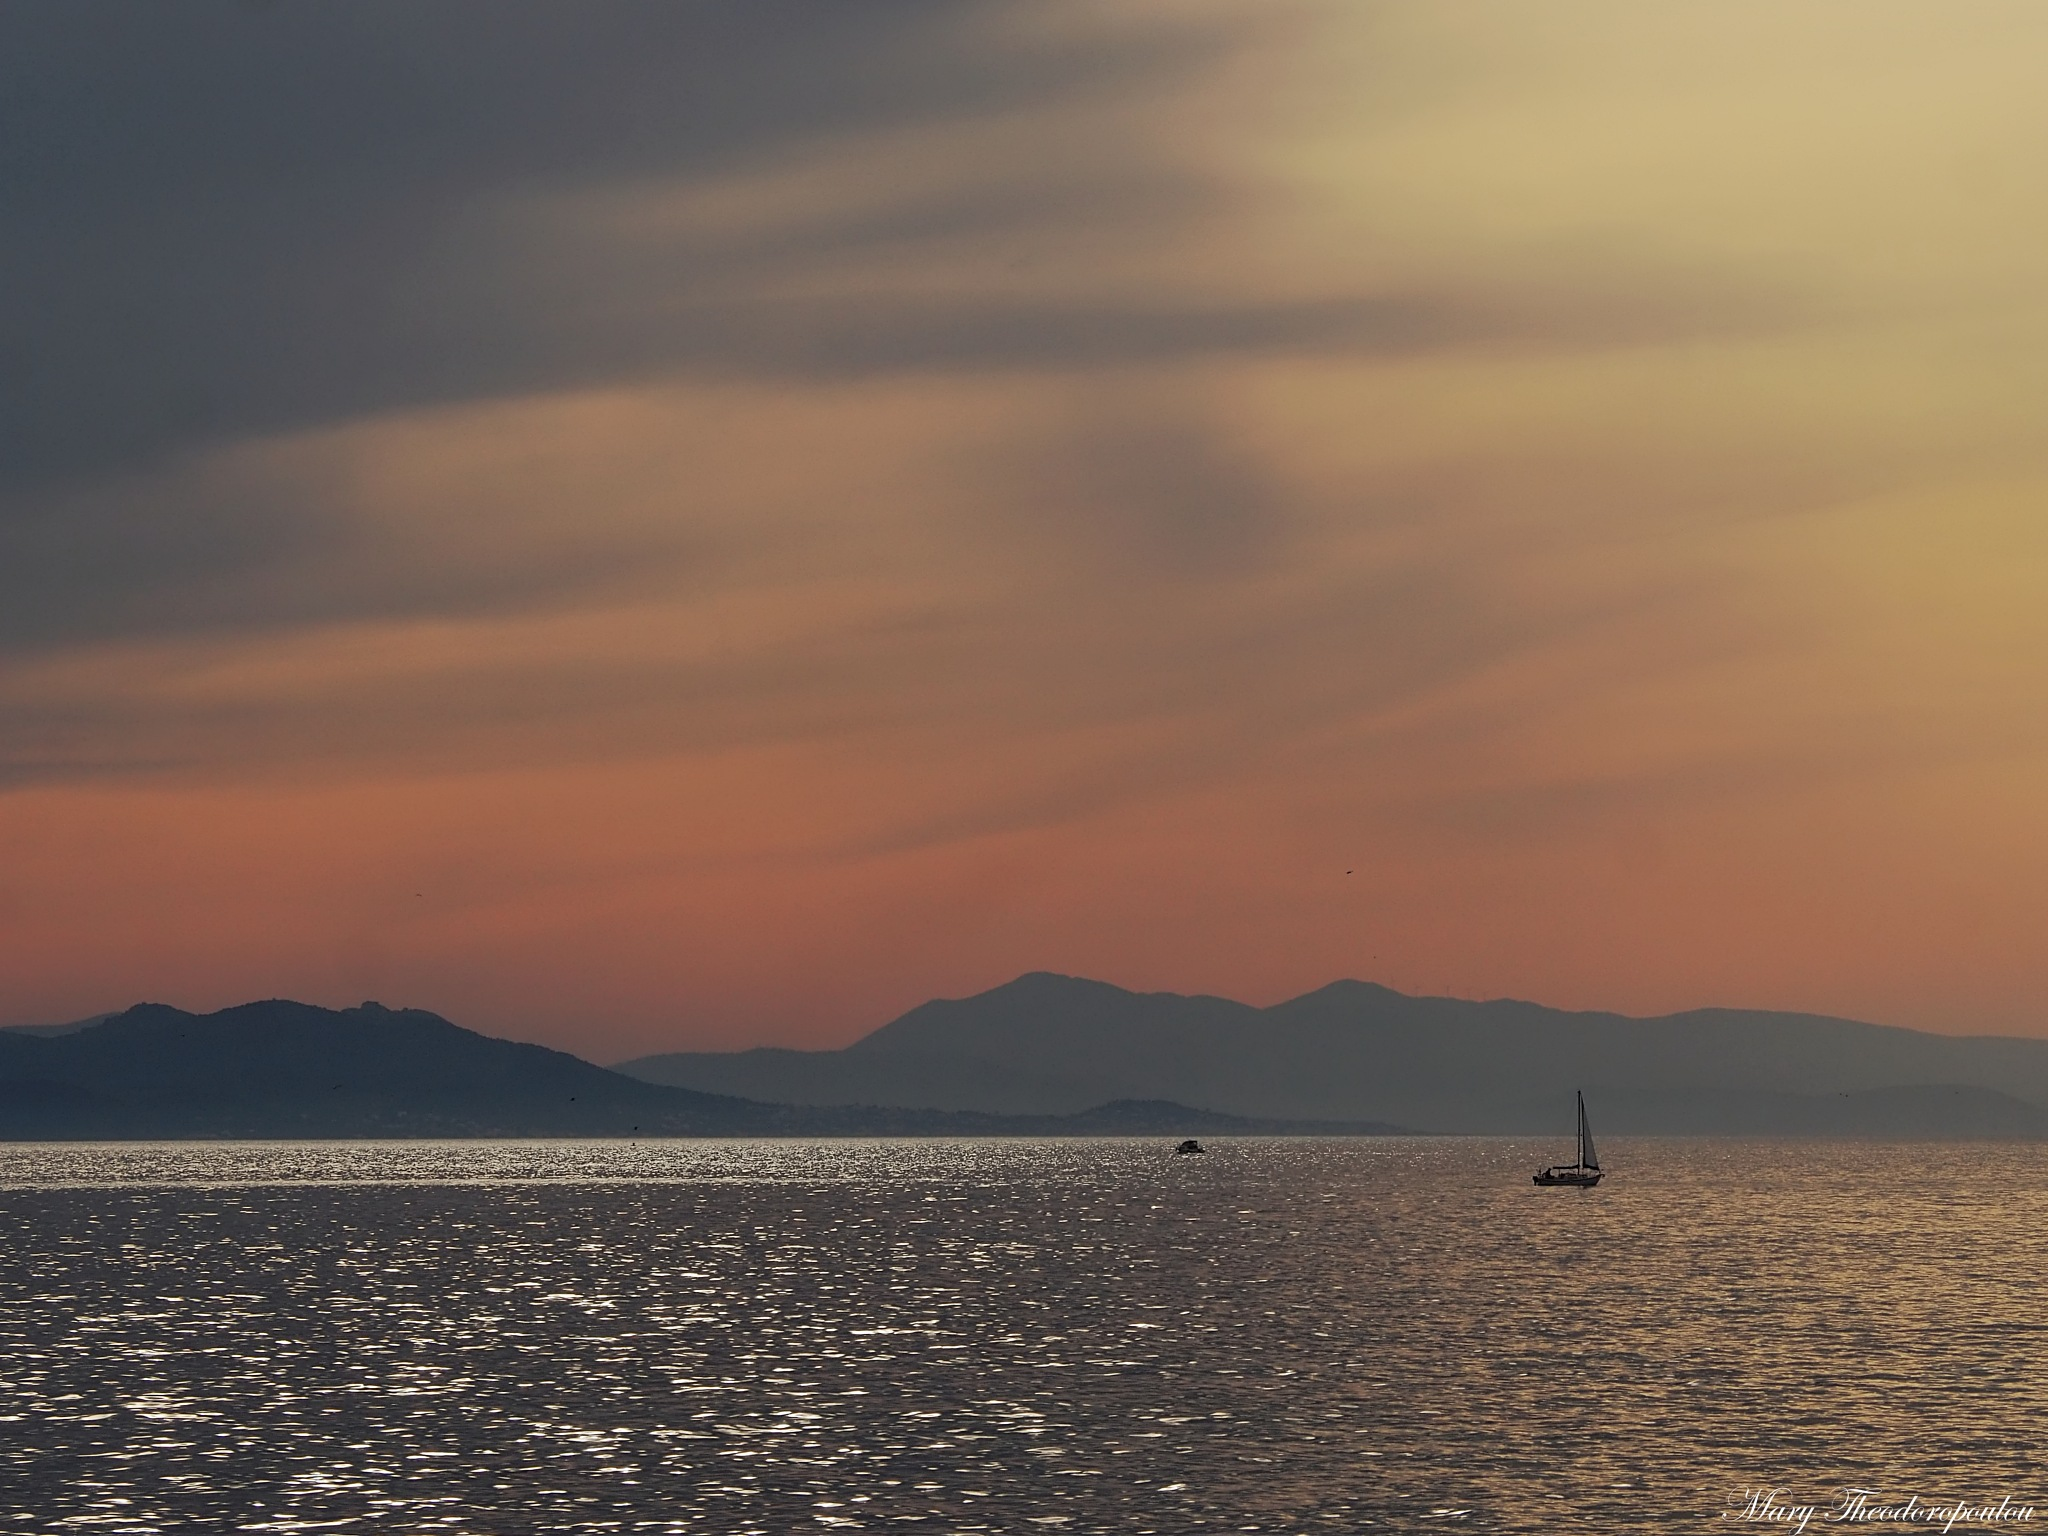 Calm sea by Mary Theodoropoulou